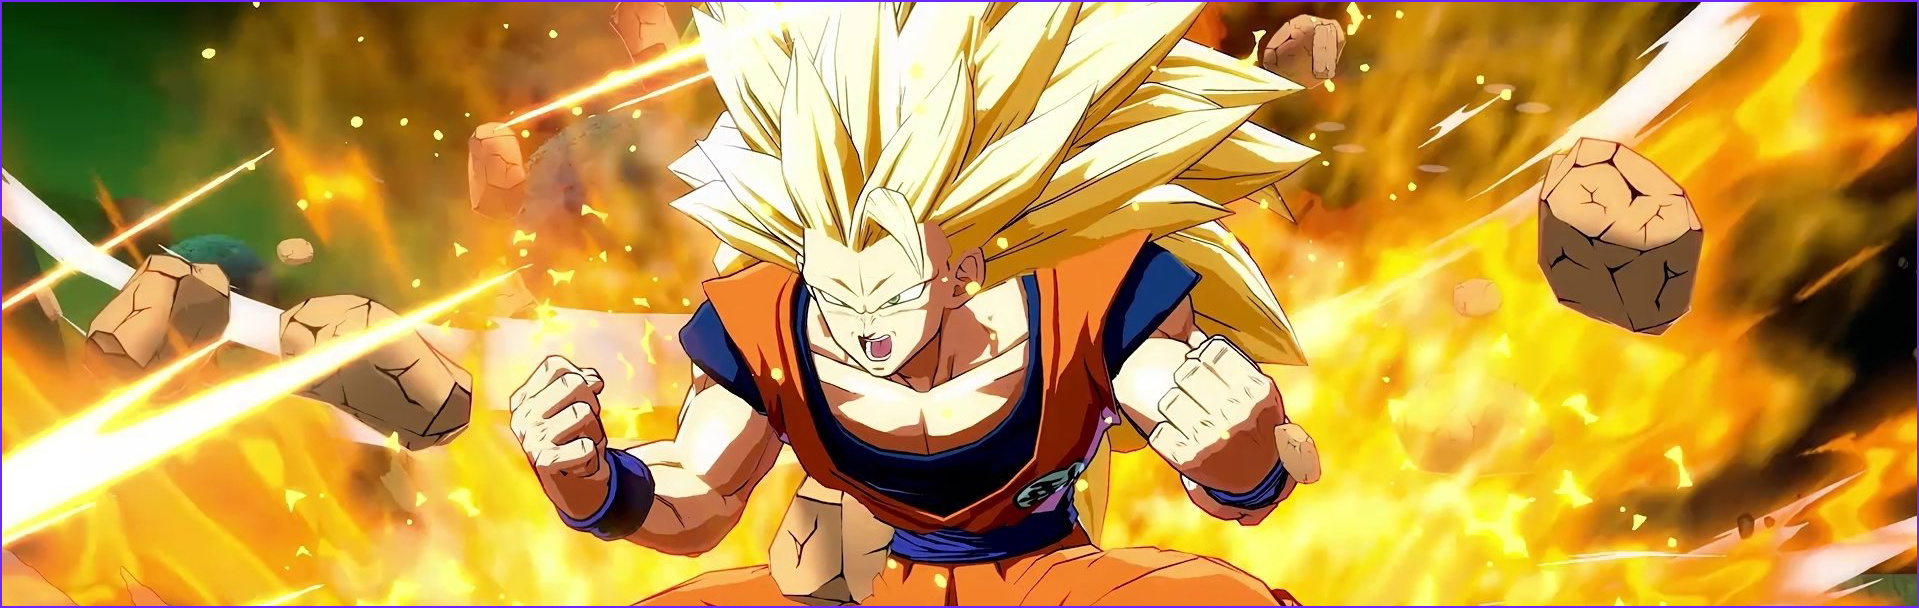 Coloring Dragonball Z Awesome Image Dragon Ball Fighterz Player Skills Tips